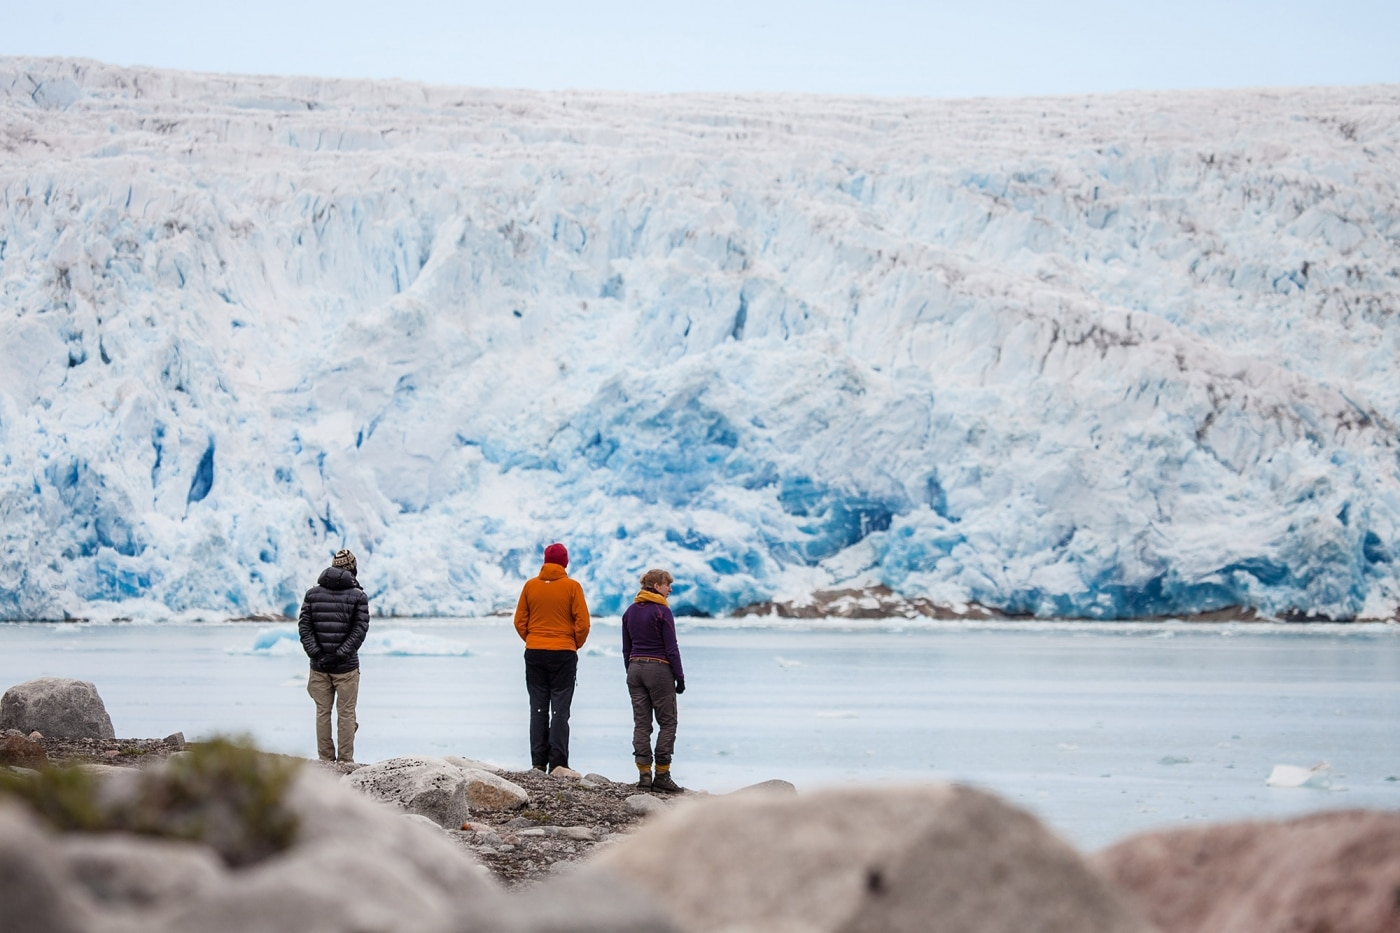 Greenland Adventures by Icelandic Mountain Guides: Blue Ice and Arctic Wonders